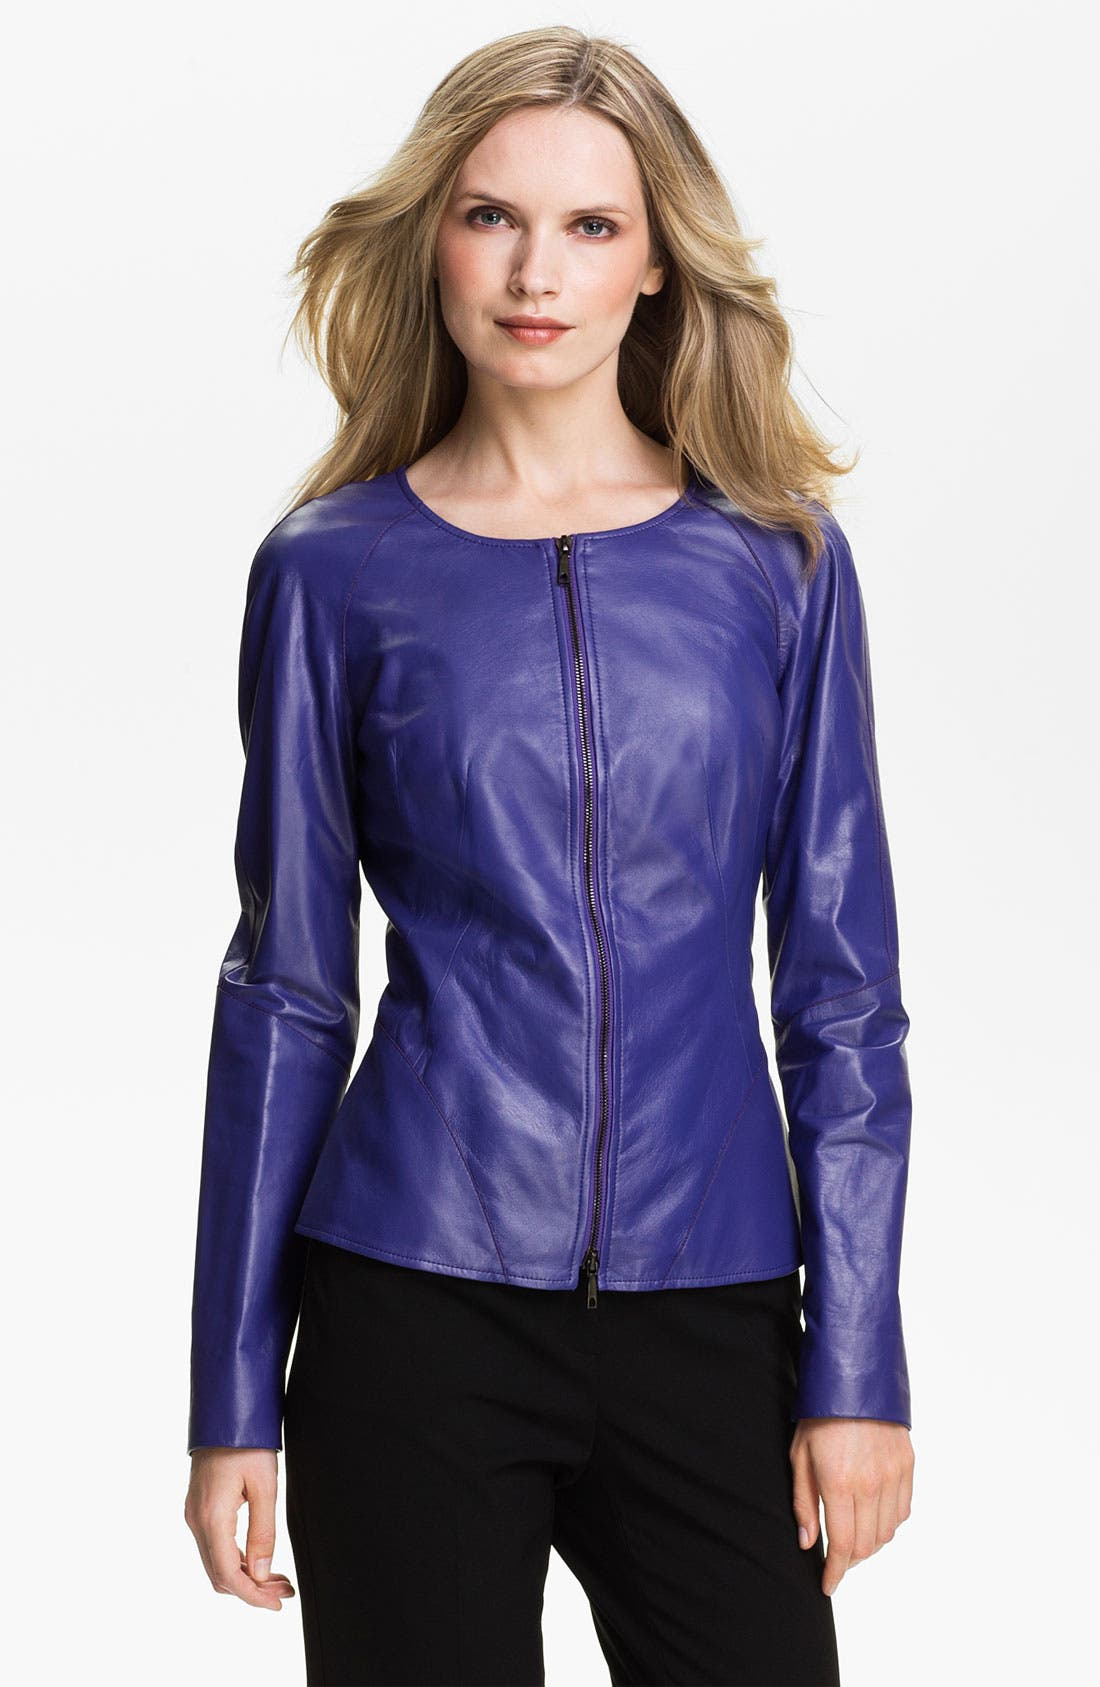 Alternate Image 1 Selected - Lafayette 148 New York Leather Moto Jacket